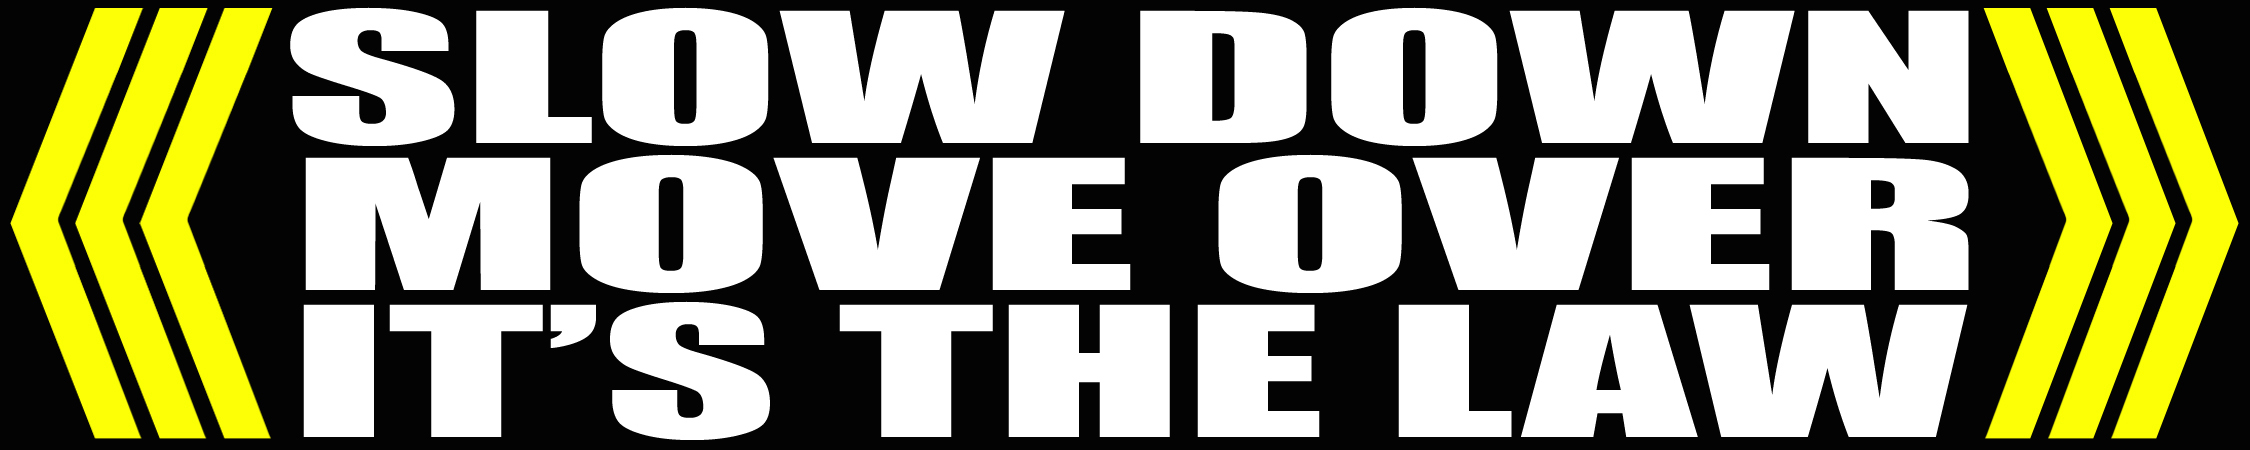 Slow Down Move Over It's The Law Vinyl Decal by LilBitOLove on